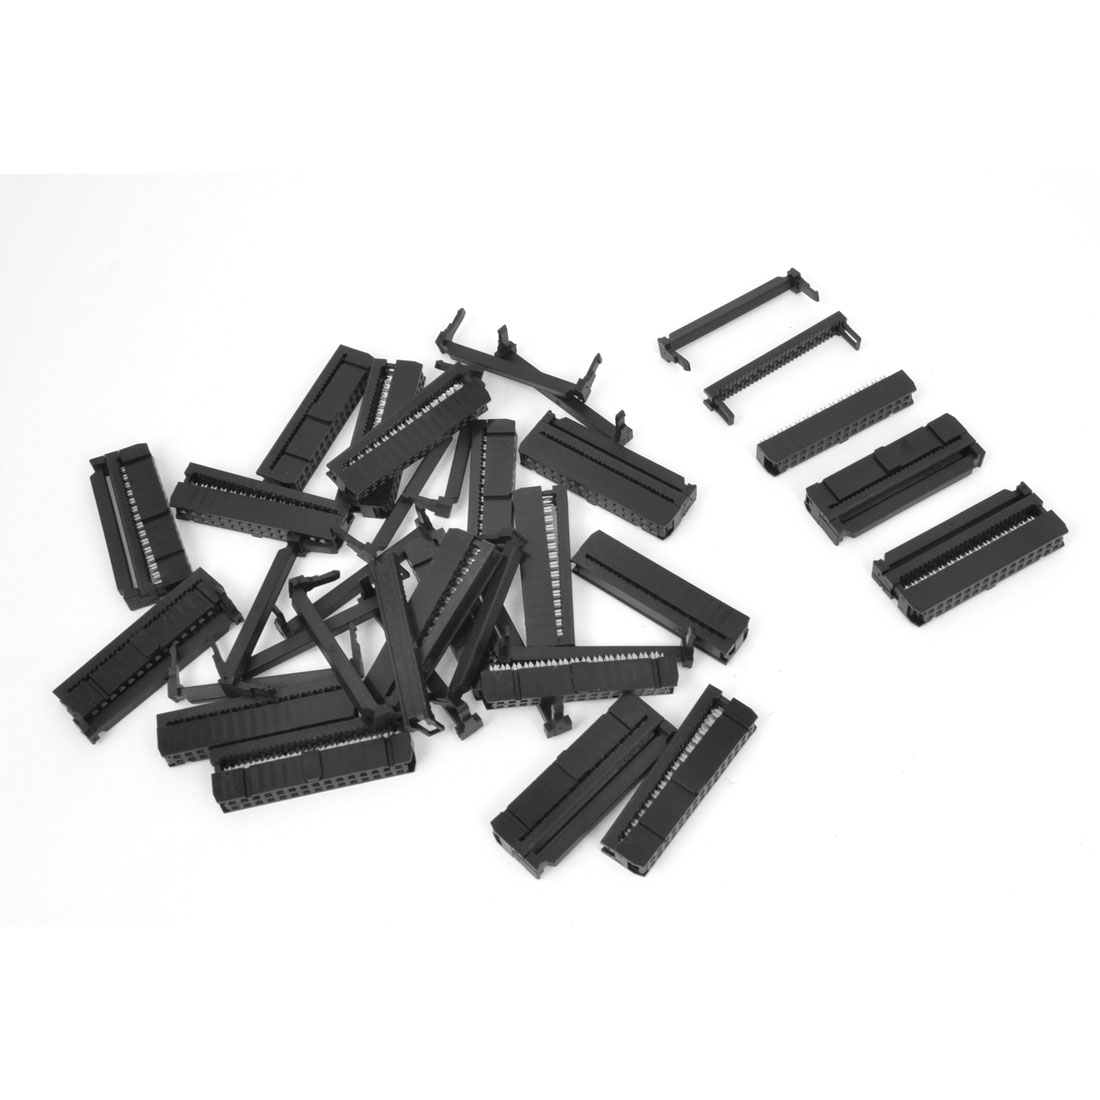 20PCS 2.54mm Pitch 2 x 15 Pin 30 Pin FC Female Header IDC Socket Connector Black